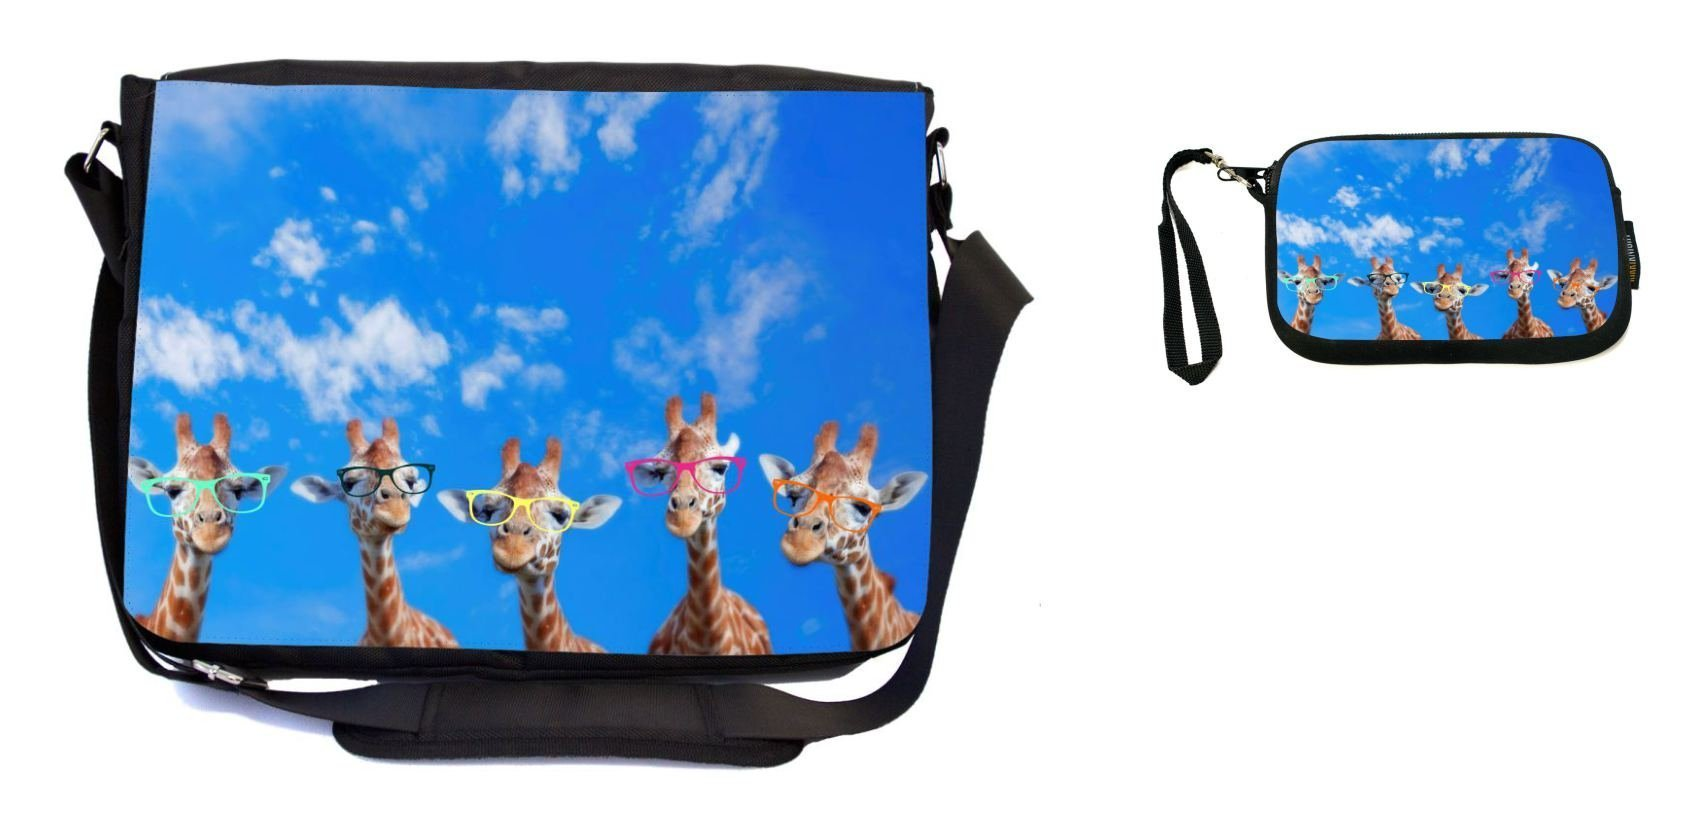 Rikki Knight Hipster Giraffes with Colorful Glasses Design Messenger Bag - School Bag - Laptop Bag - with Padded Insert - Includes UKBK Premium Coin Purse